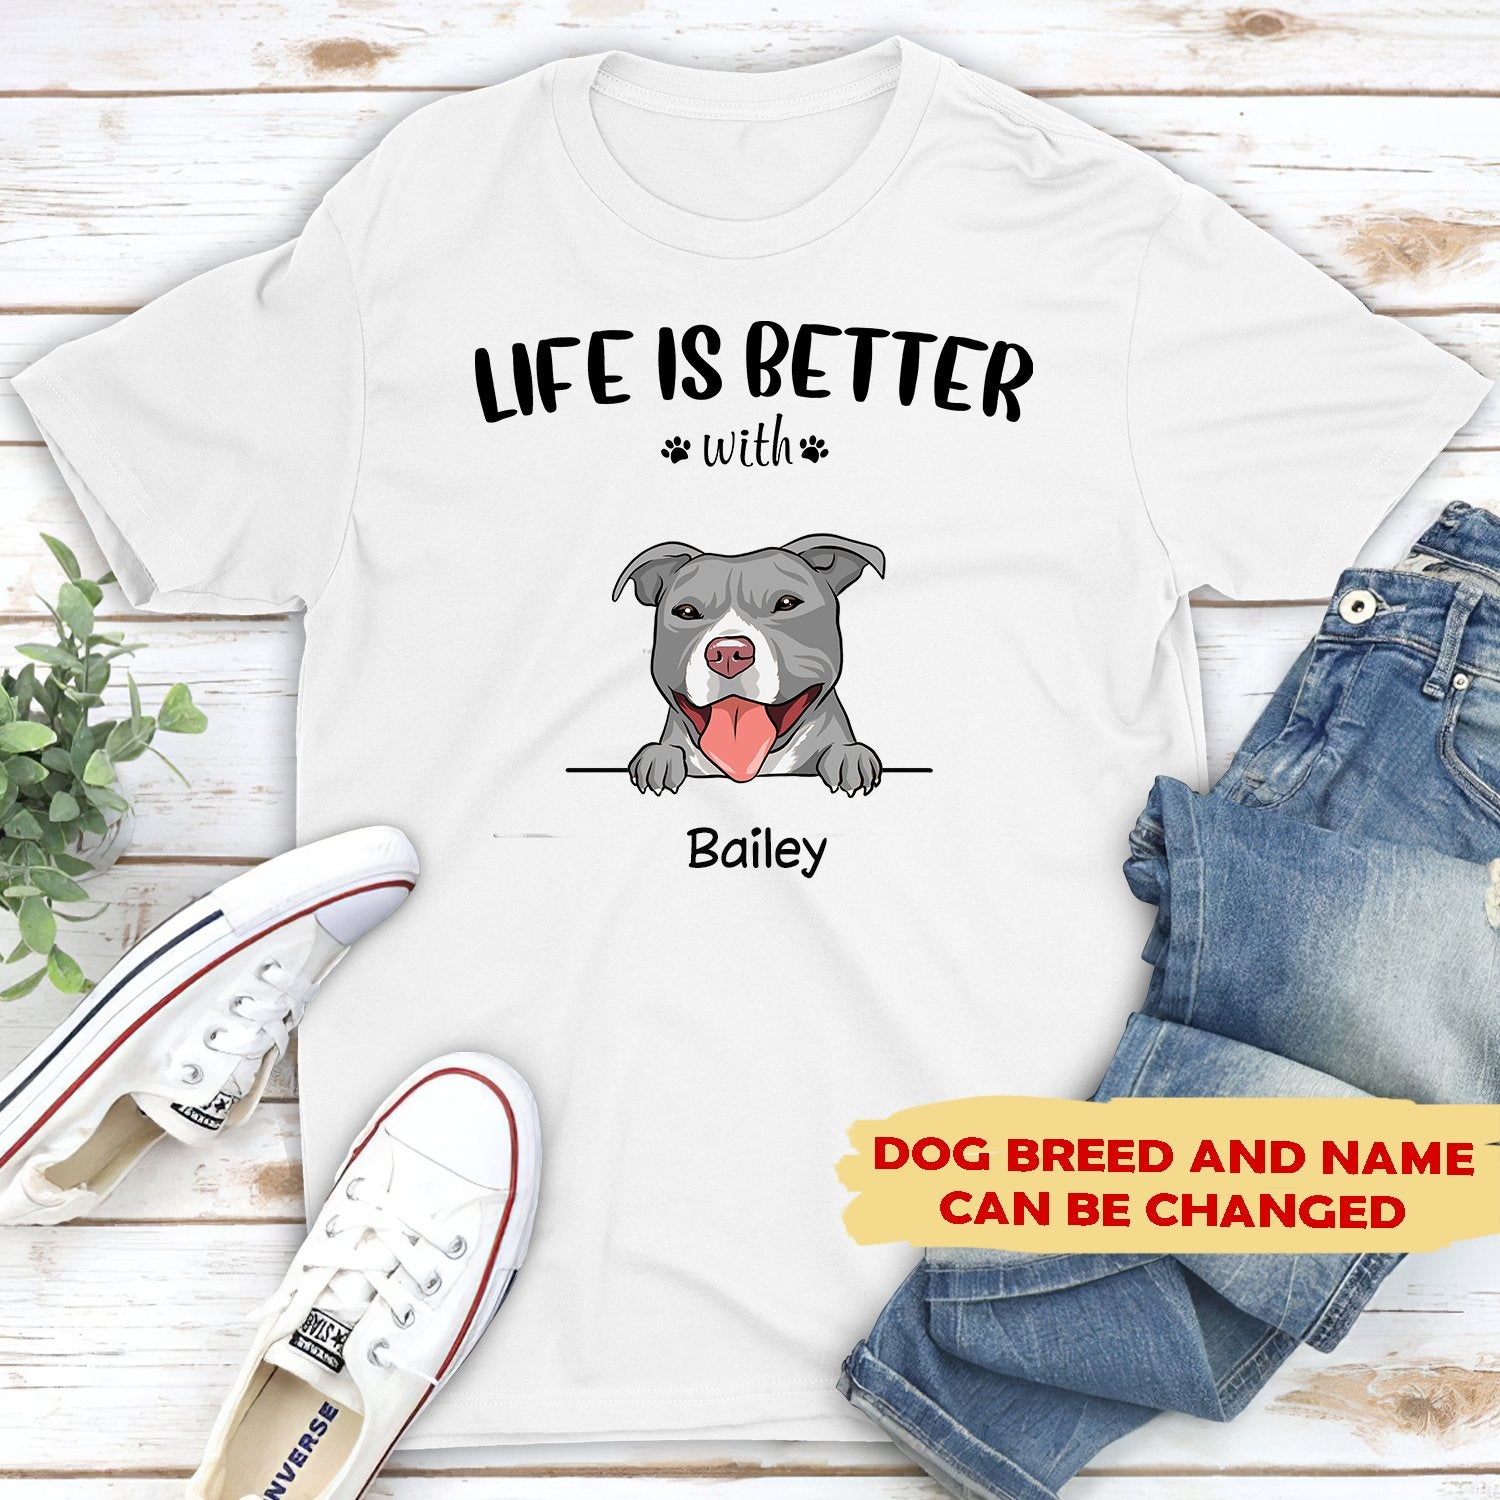 Life is better - Personalized custom premium unisex T-shirt